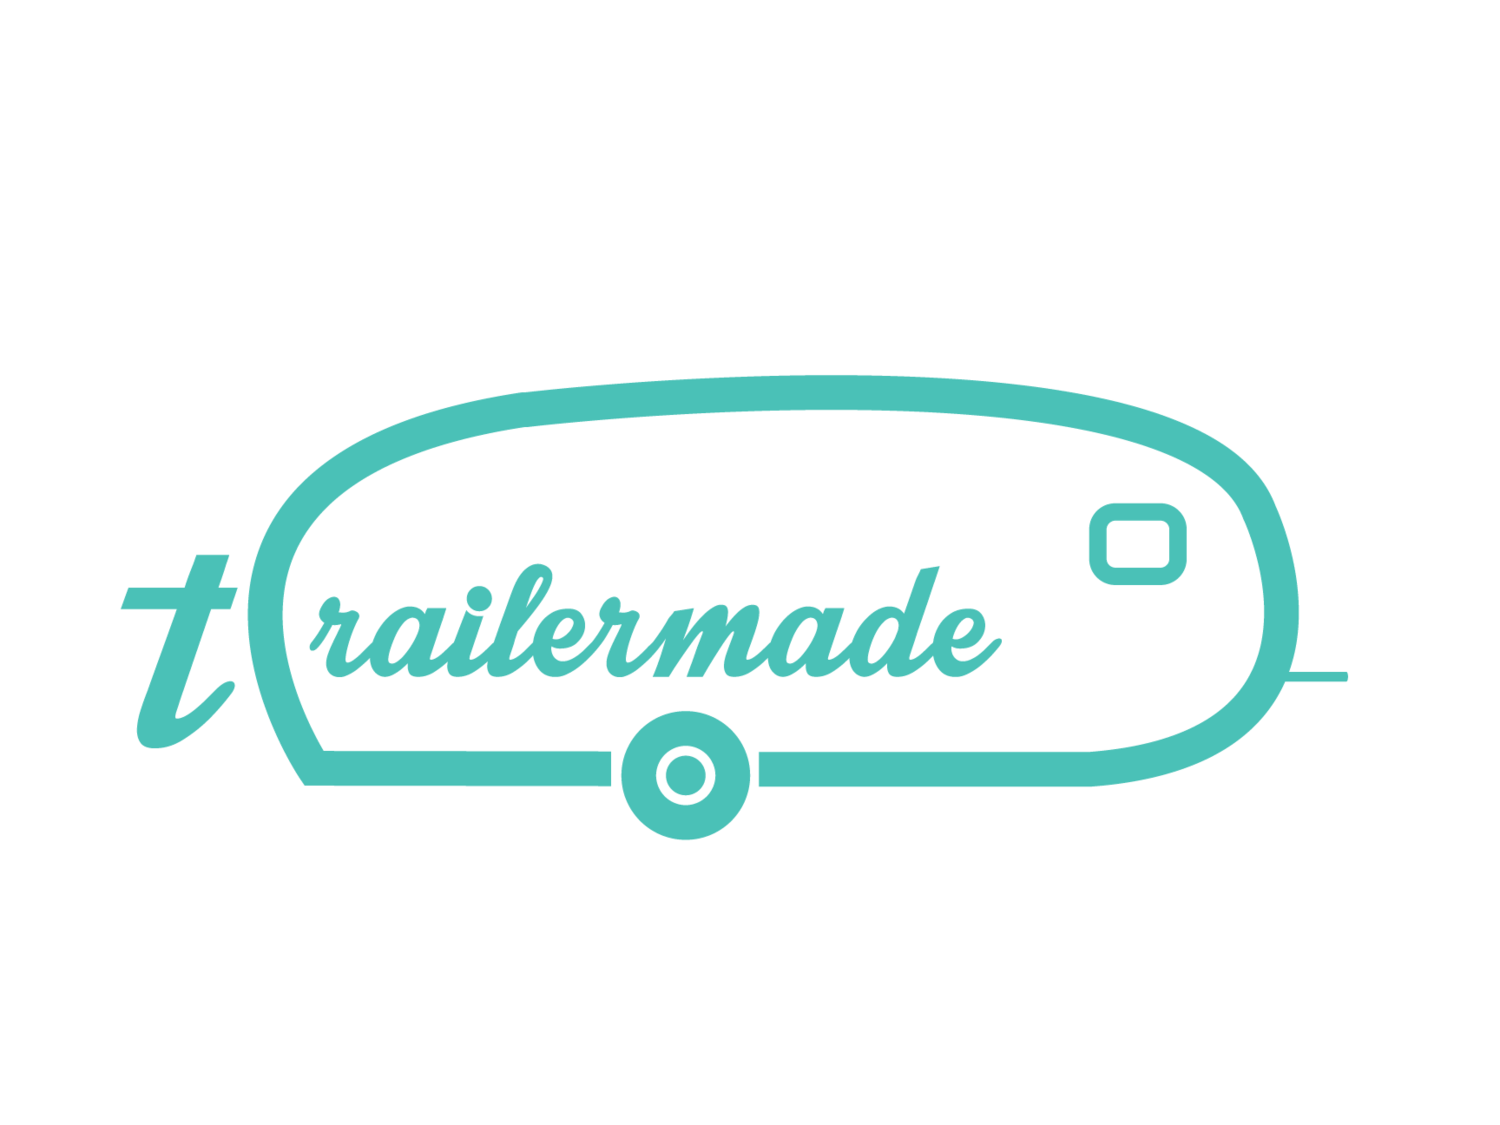 Trailermade